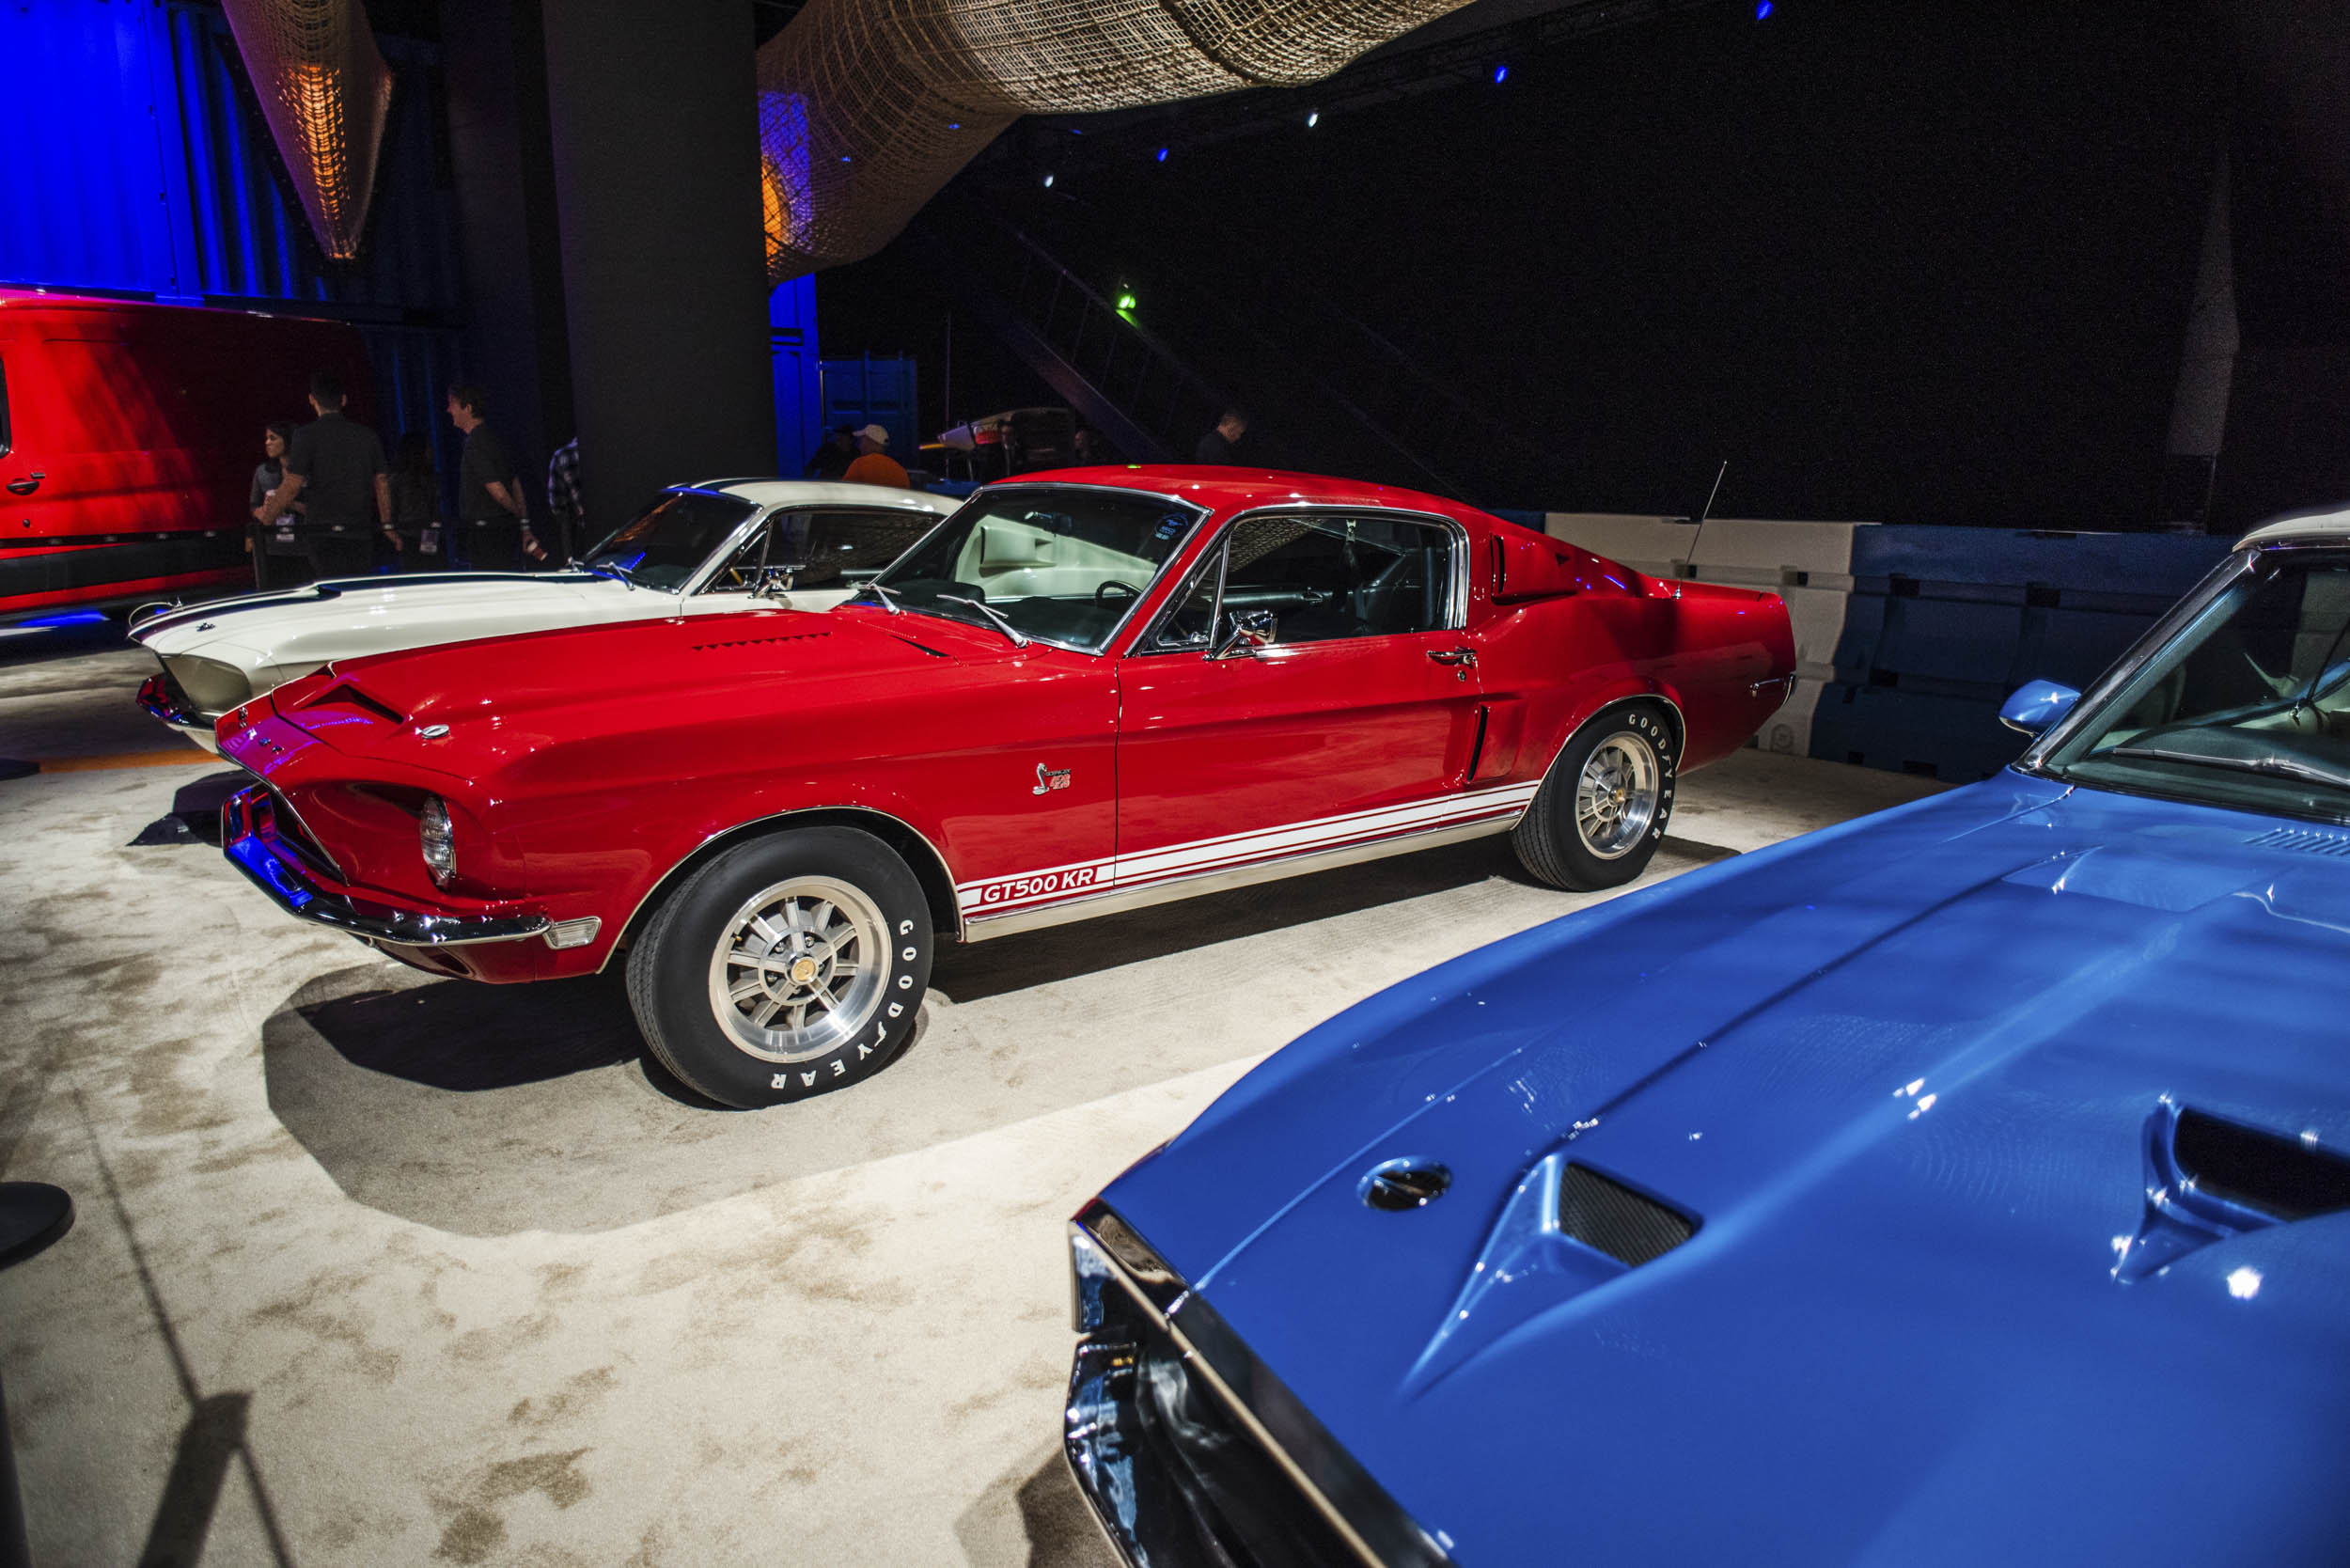 Vintage Shelby GT500s at Ford's NAIAS booth